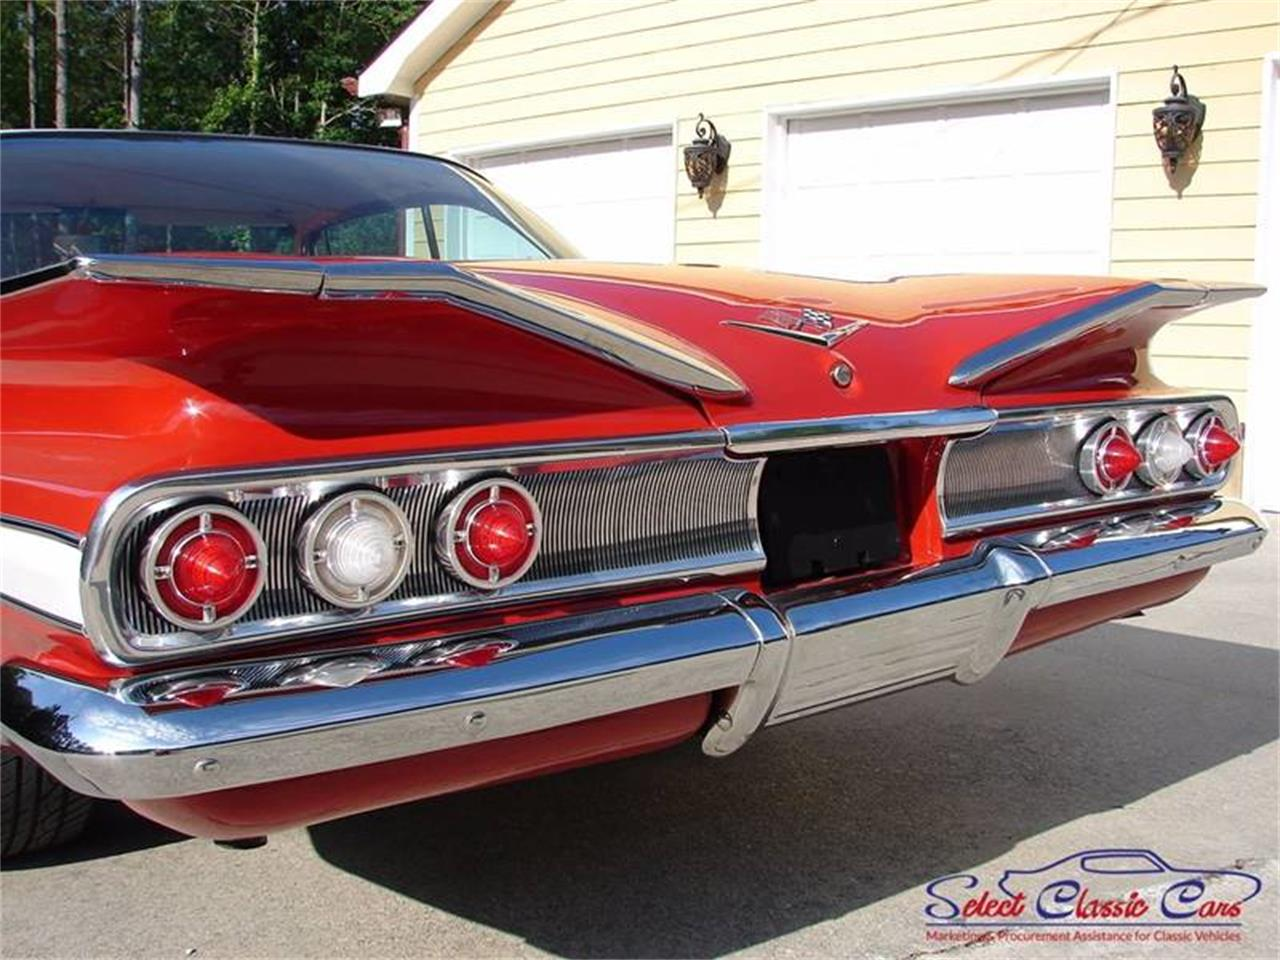 Large Picture of 1960 Chevrolet Impala - $44,500.00 Offered by Select Classic Cars - L613